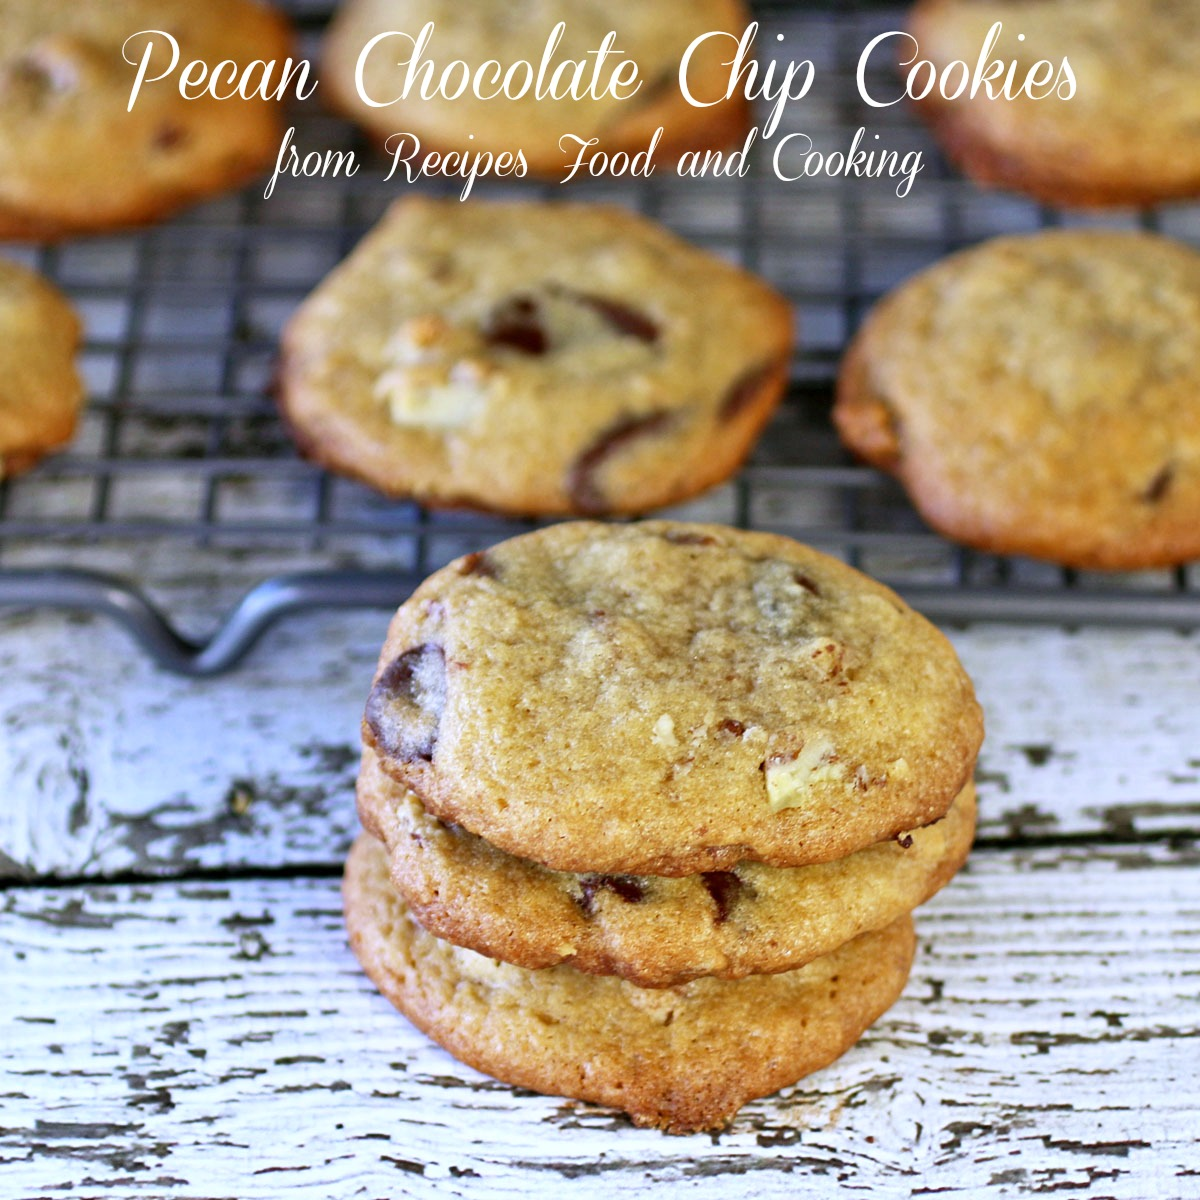 Pecan Chocolate Chip Cookies